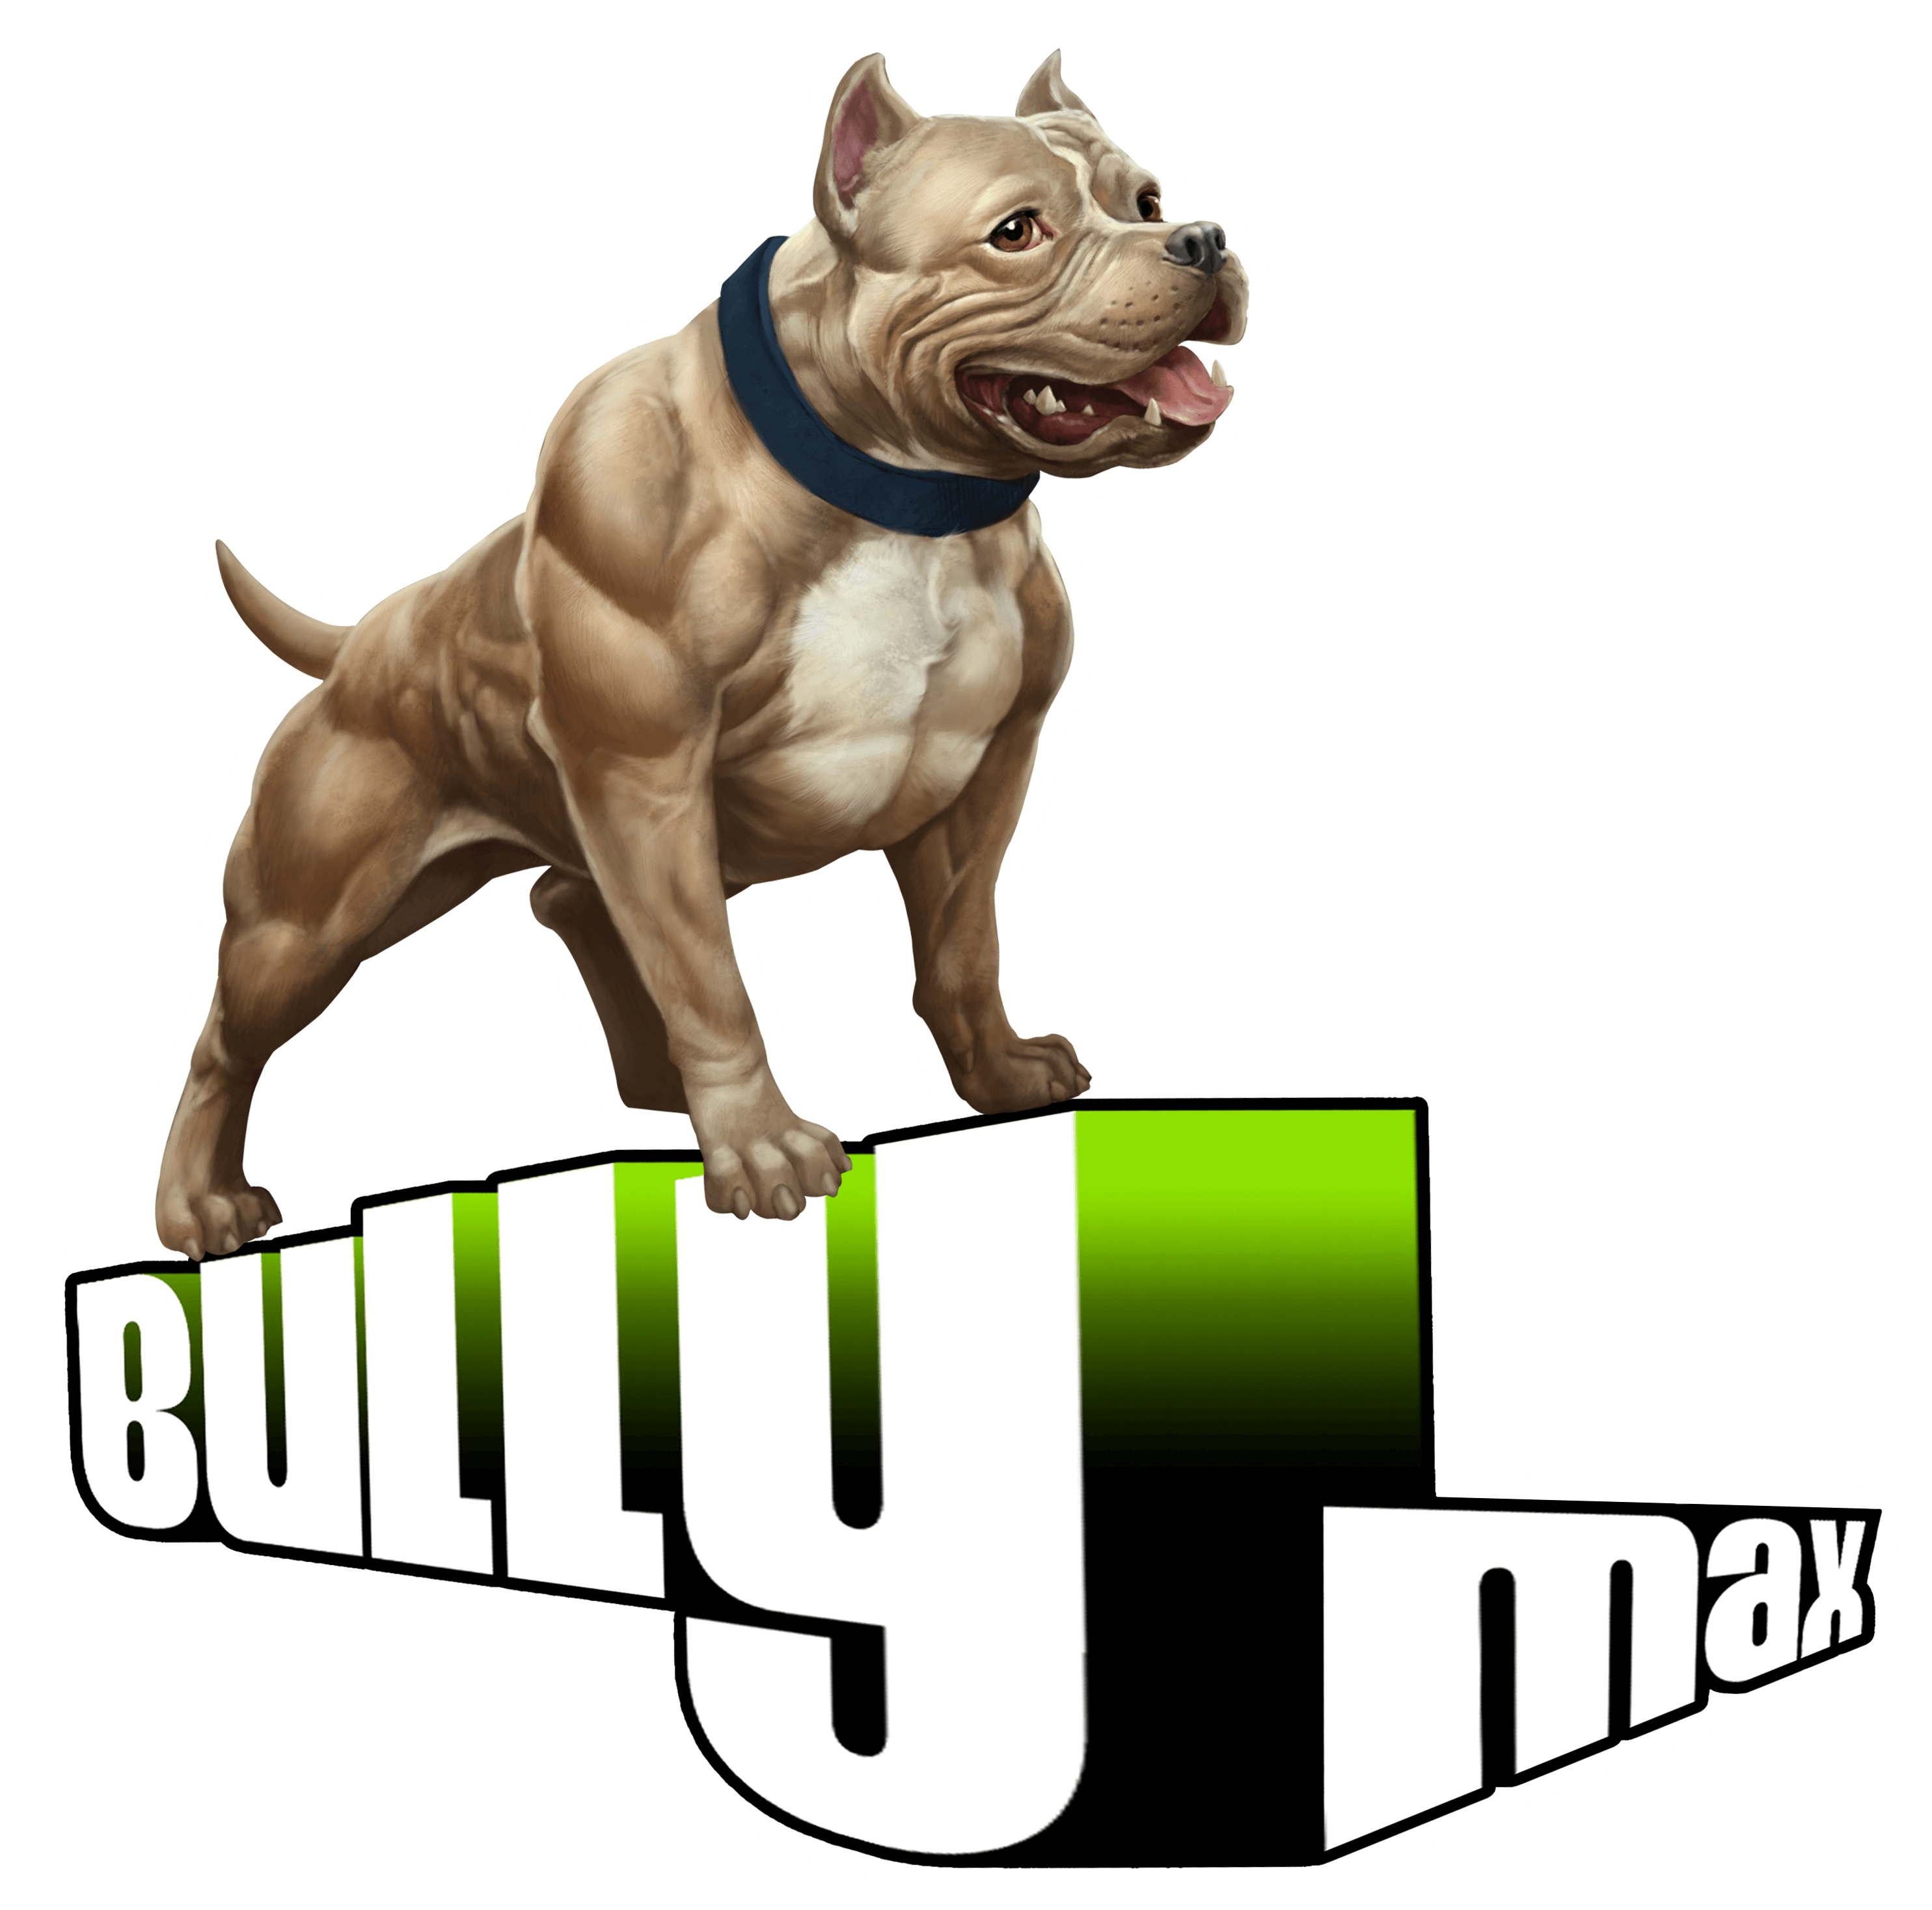 Right Click & Save the Bully Max Official Logo